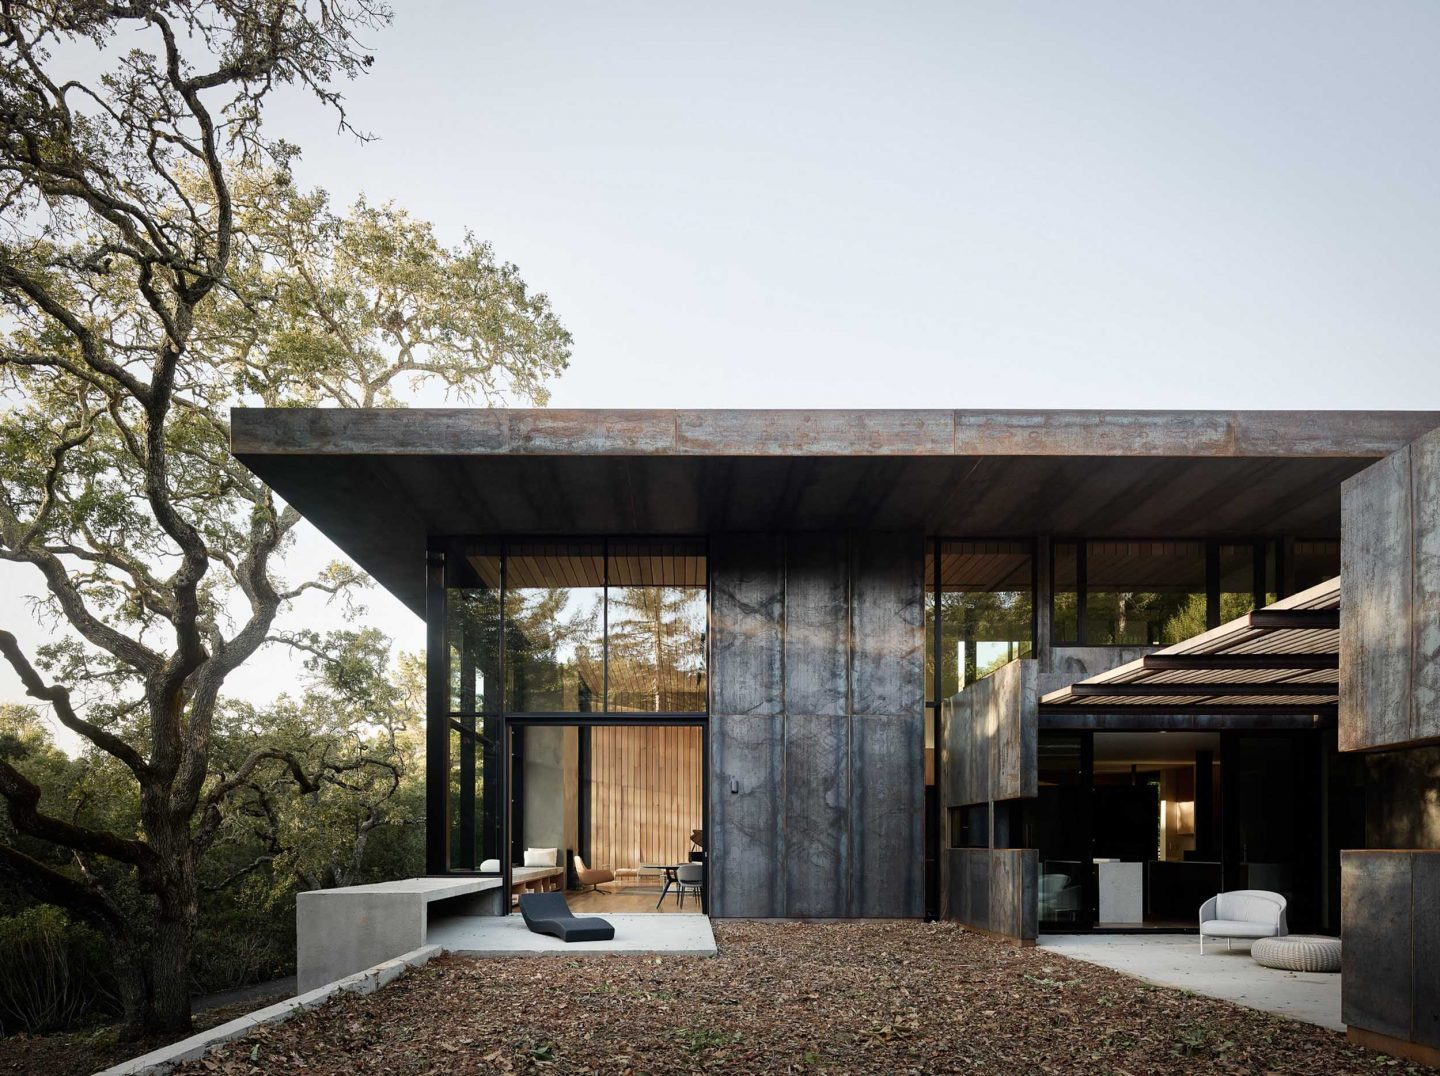 iGNANT-Architecture-Faulker-Architects-Weathering-Steel-Home-009